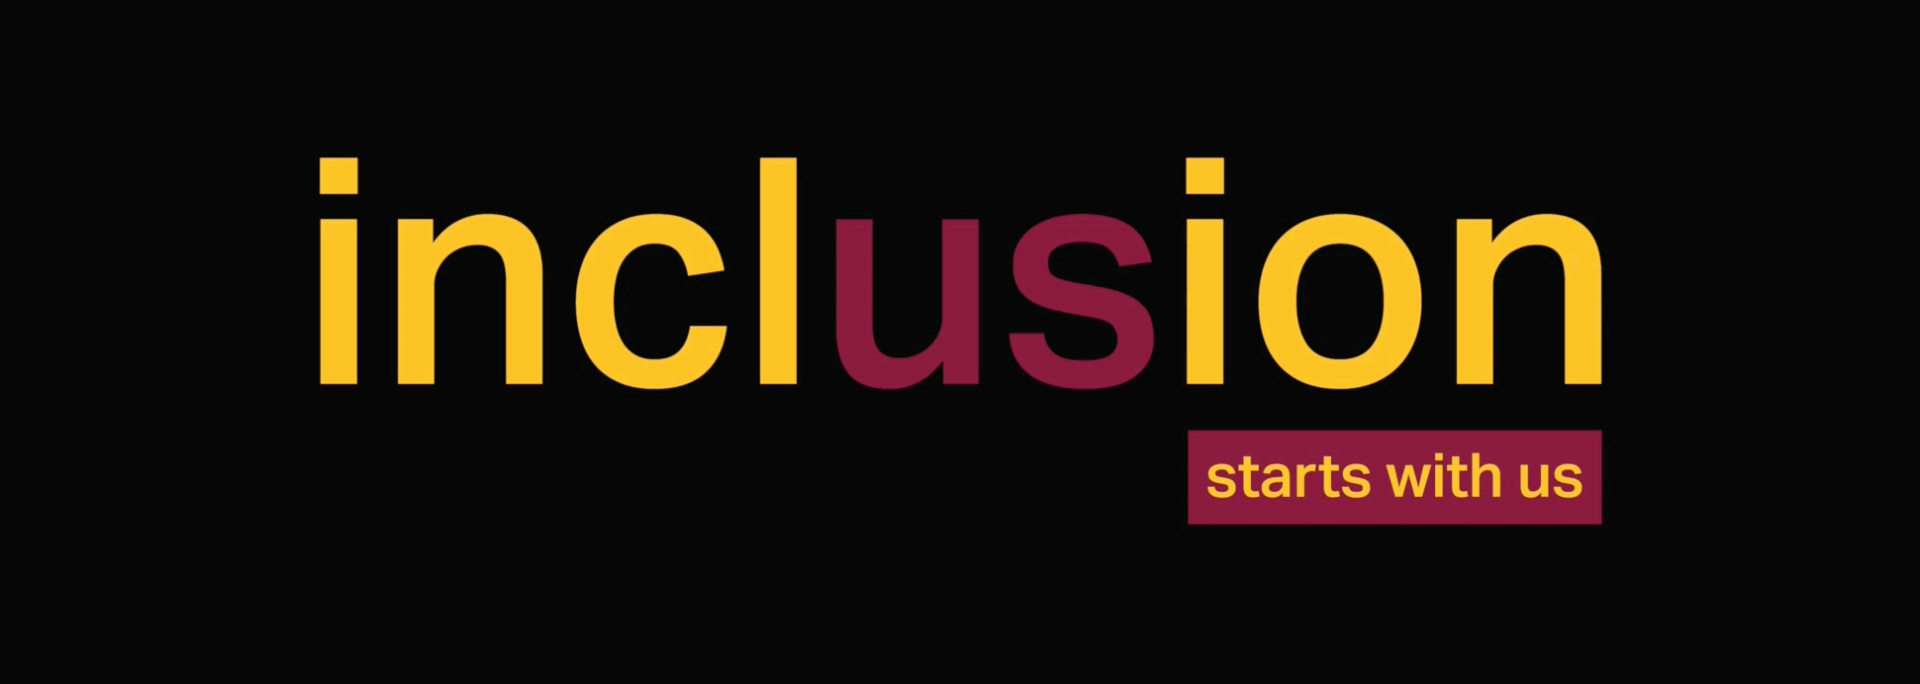 Inclusion starts with us